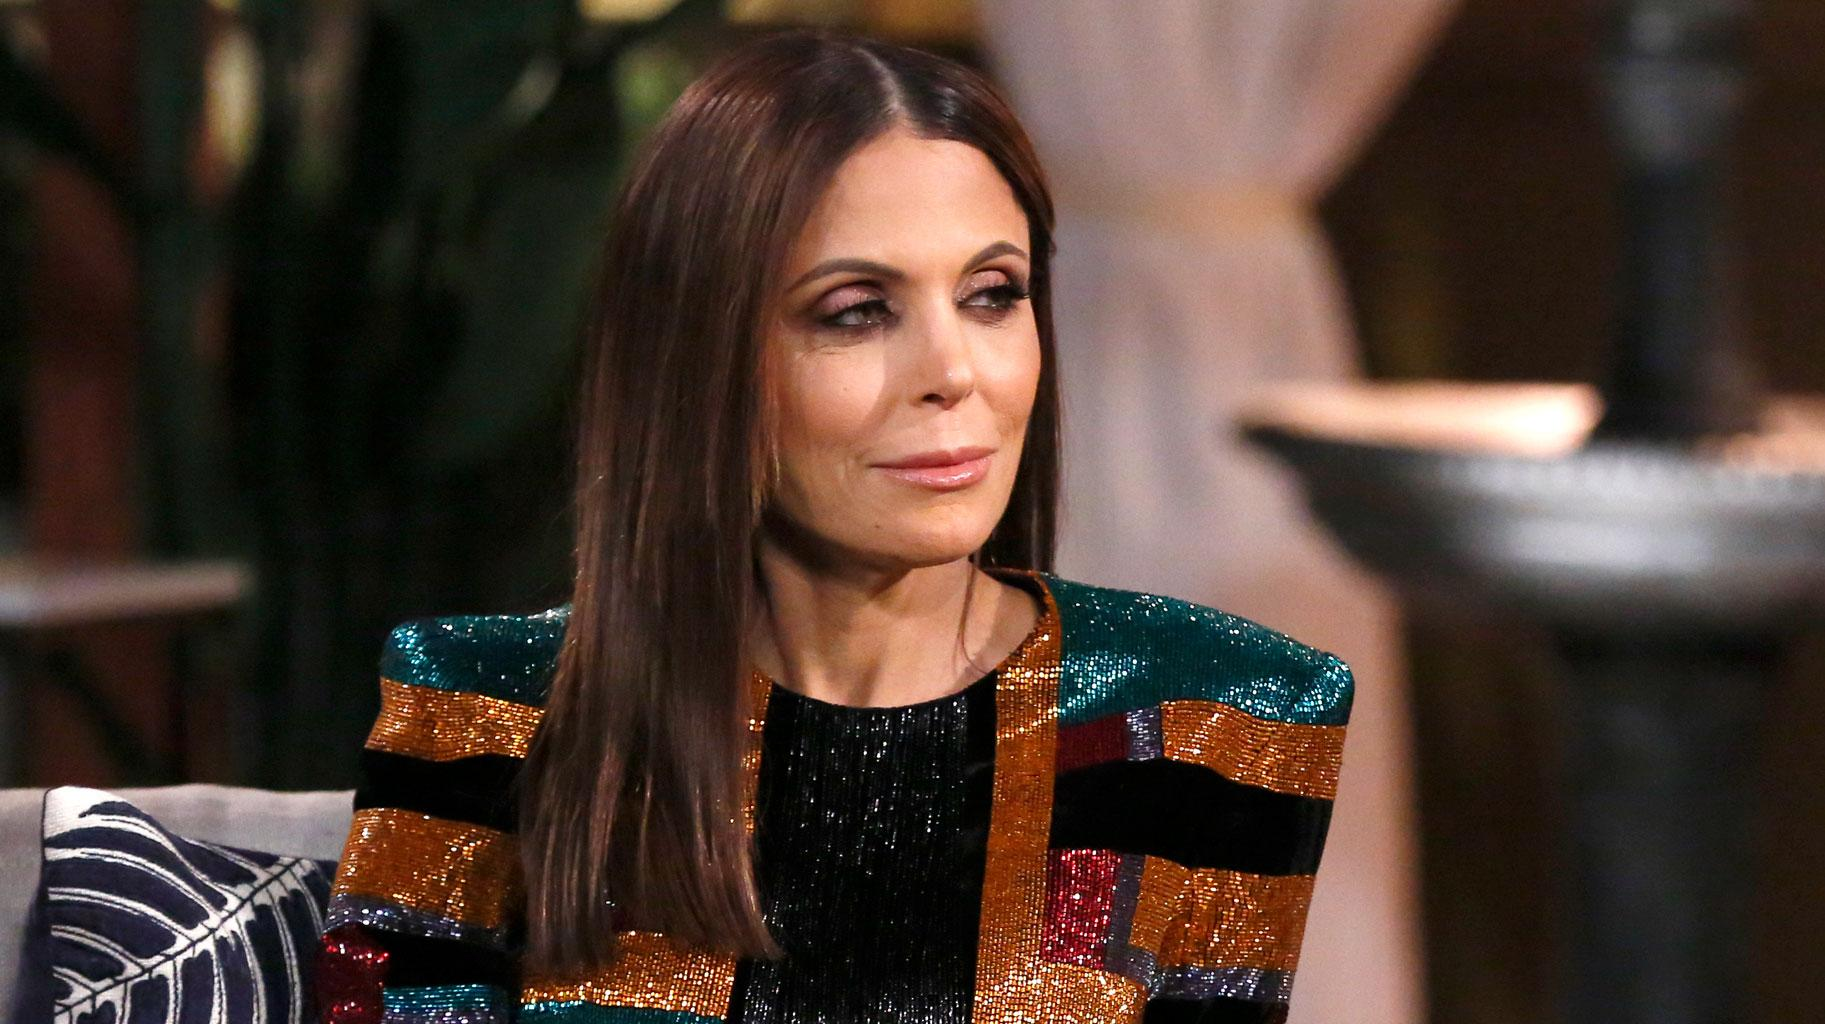 Bethenny Frankel Slams 'RHONY' After Co-Stars Showed Her The 'Proverbial Middle Finger' On The Show's Season Premiere!